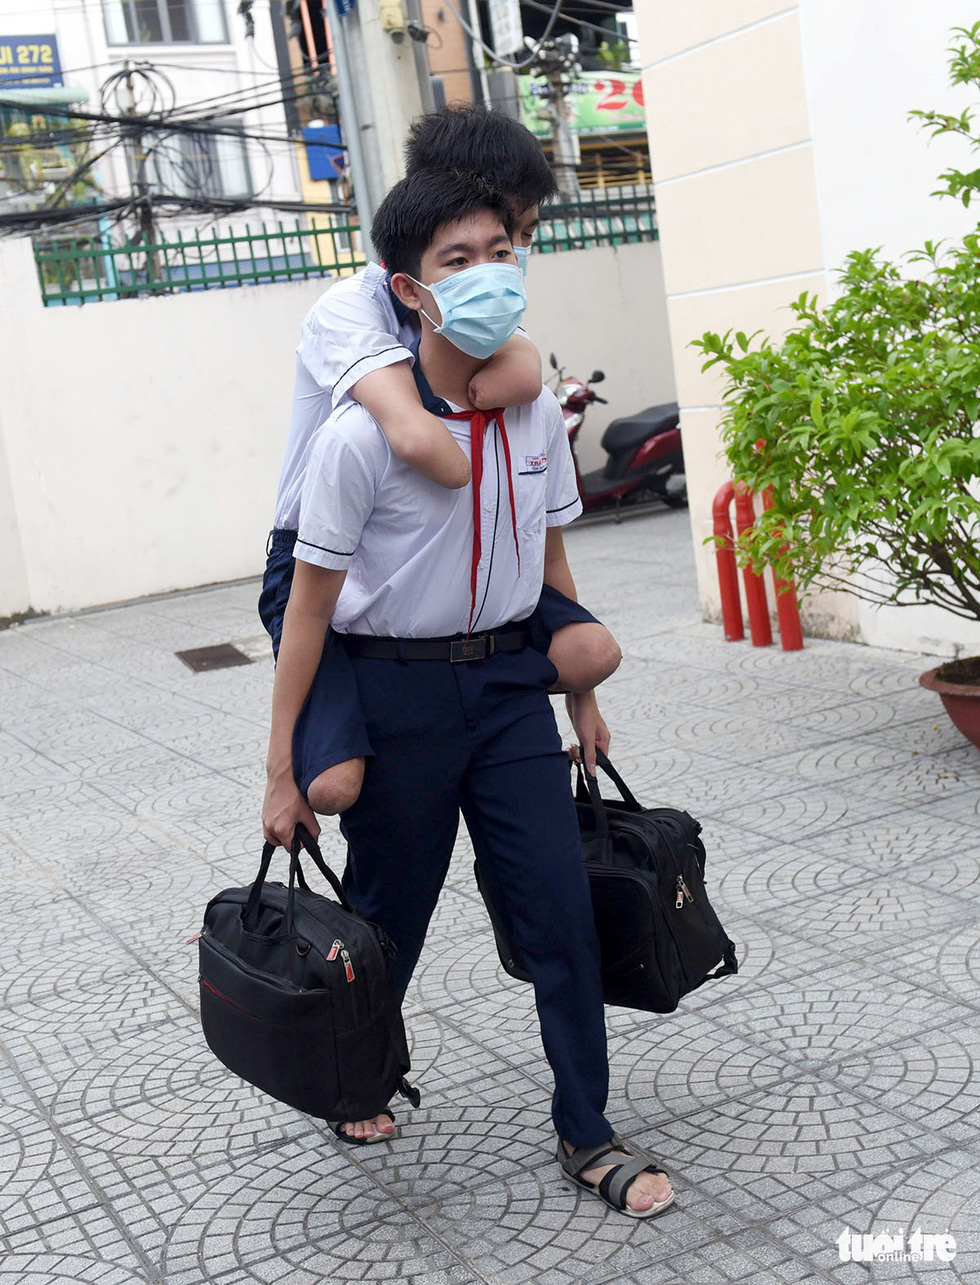 Gia Hung carries Gia Lam on his back with their school bags clutched firmly in his hands when they go to school together. Photo: Duyen Phan / Tuoi Tre